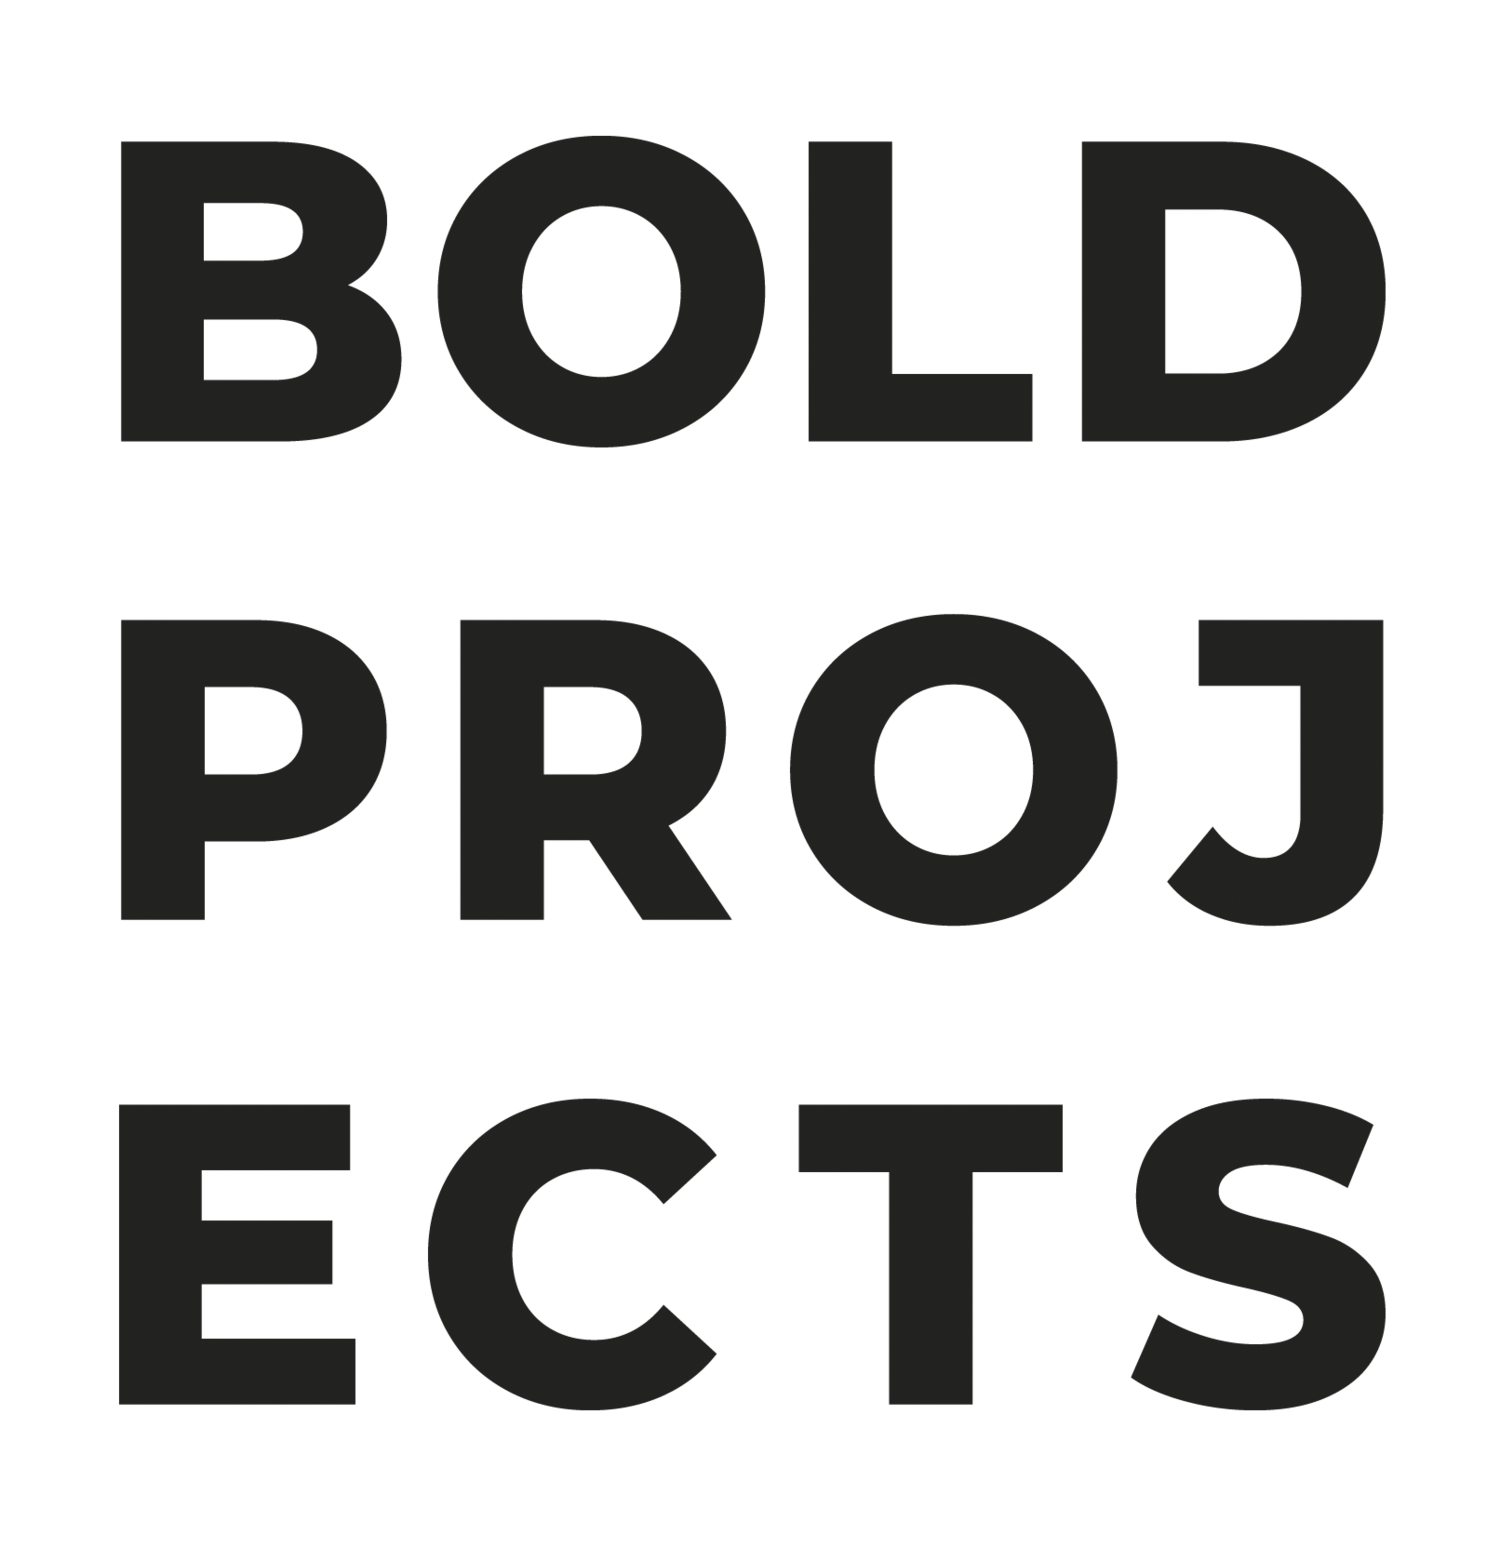 bold projects